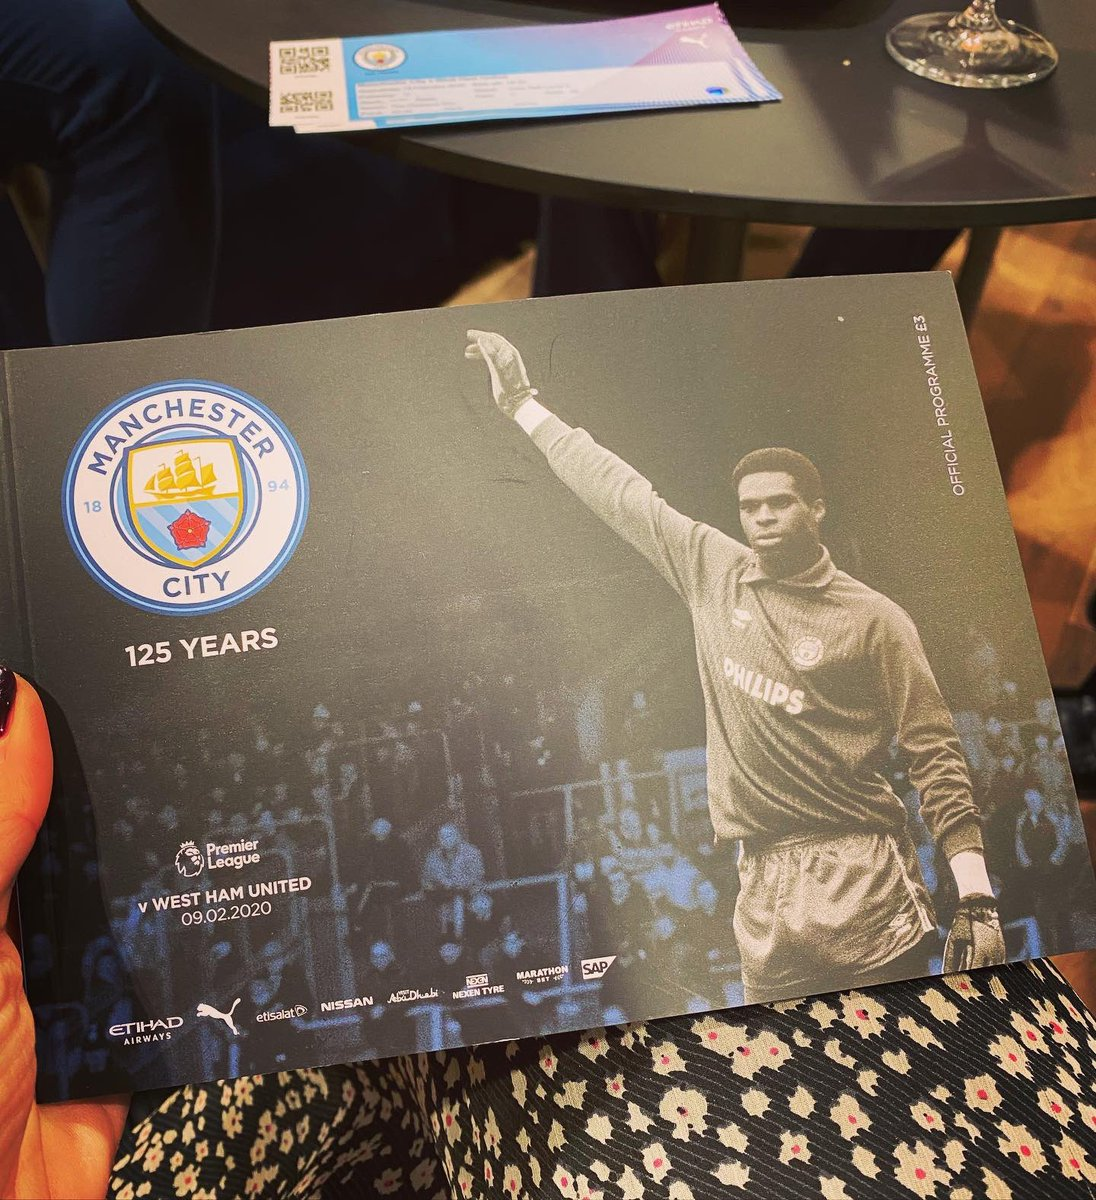 Great night at the match. 3 points. Loved the programme cover. #alexwilliamsmbe #mancity #mcfc #ctid #football #friends